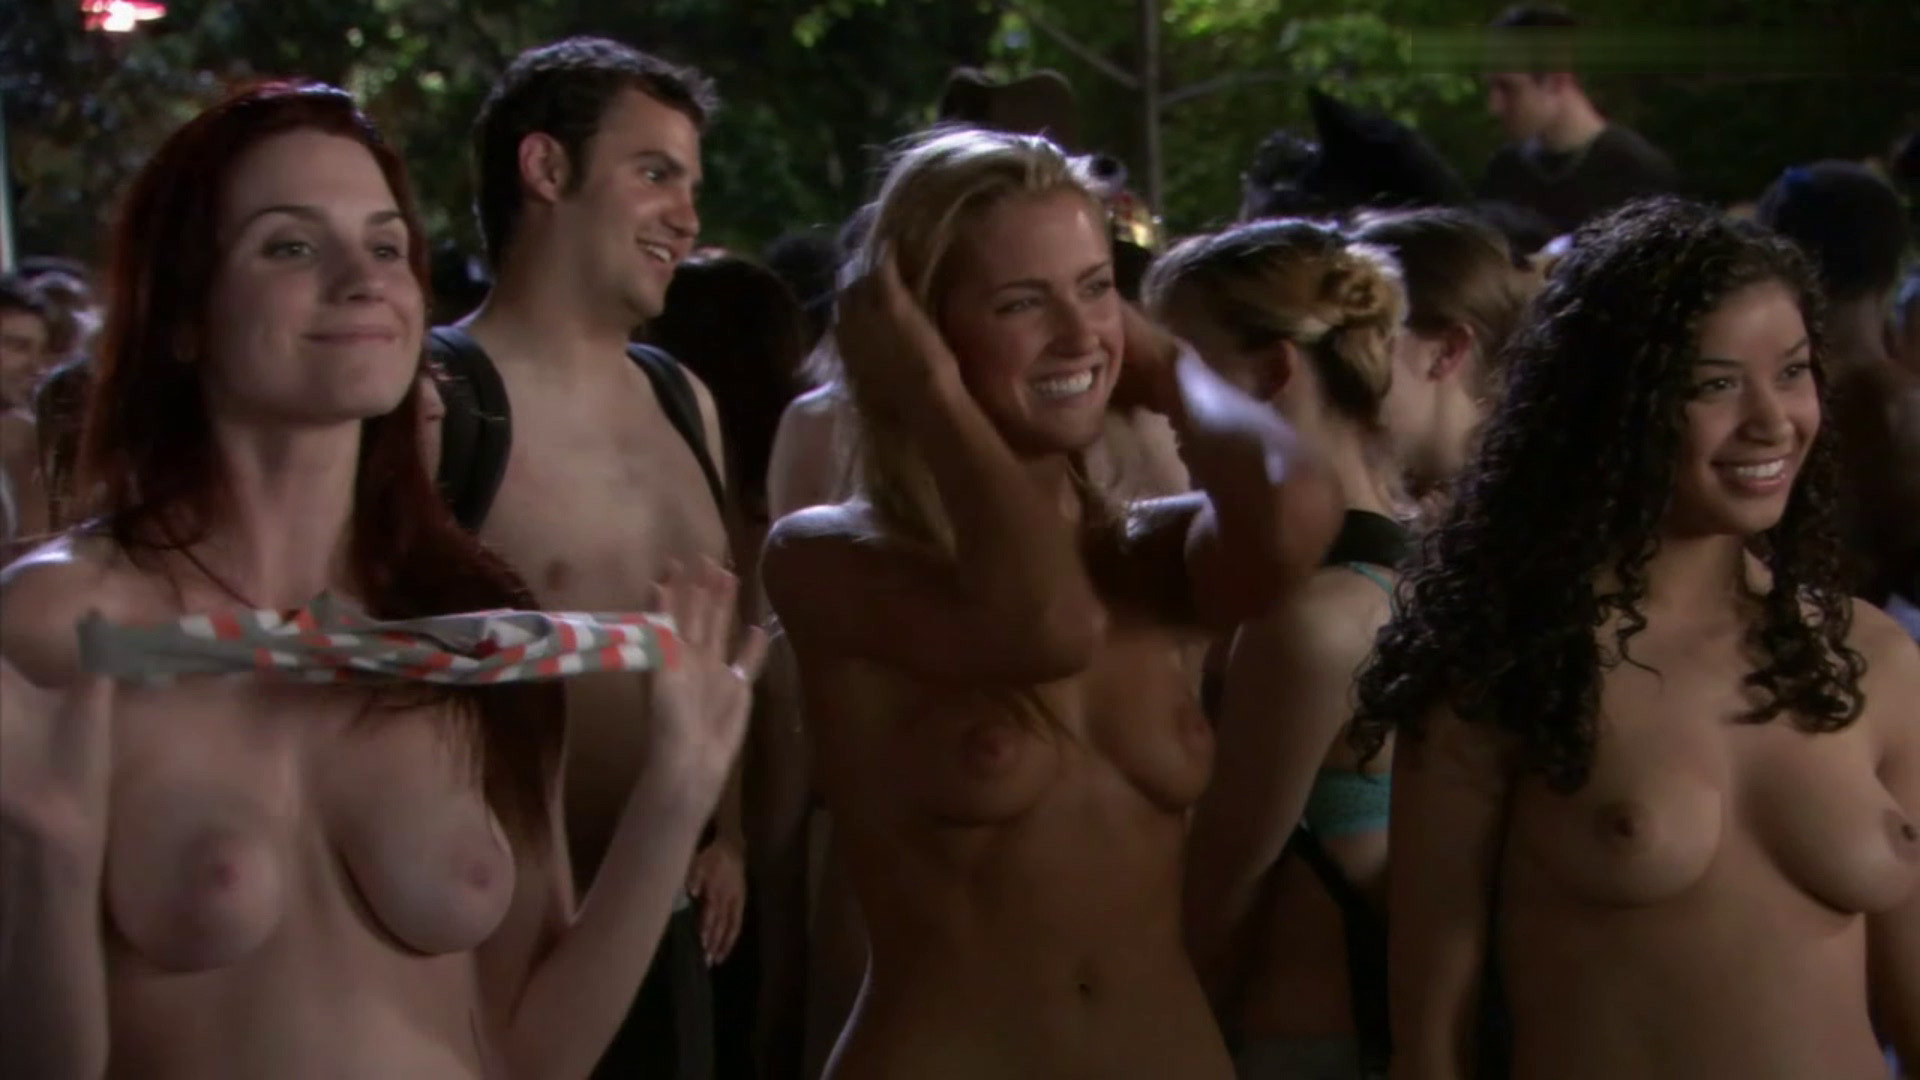 American pie the naked mile nude scenes